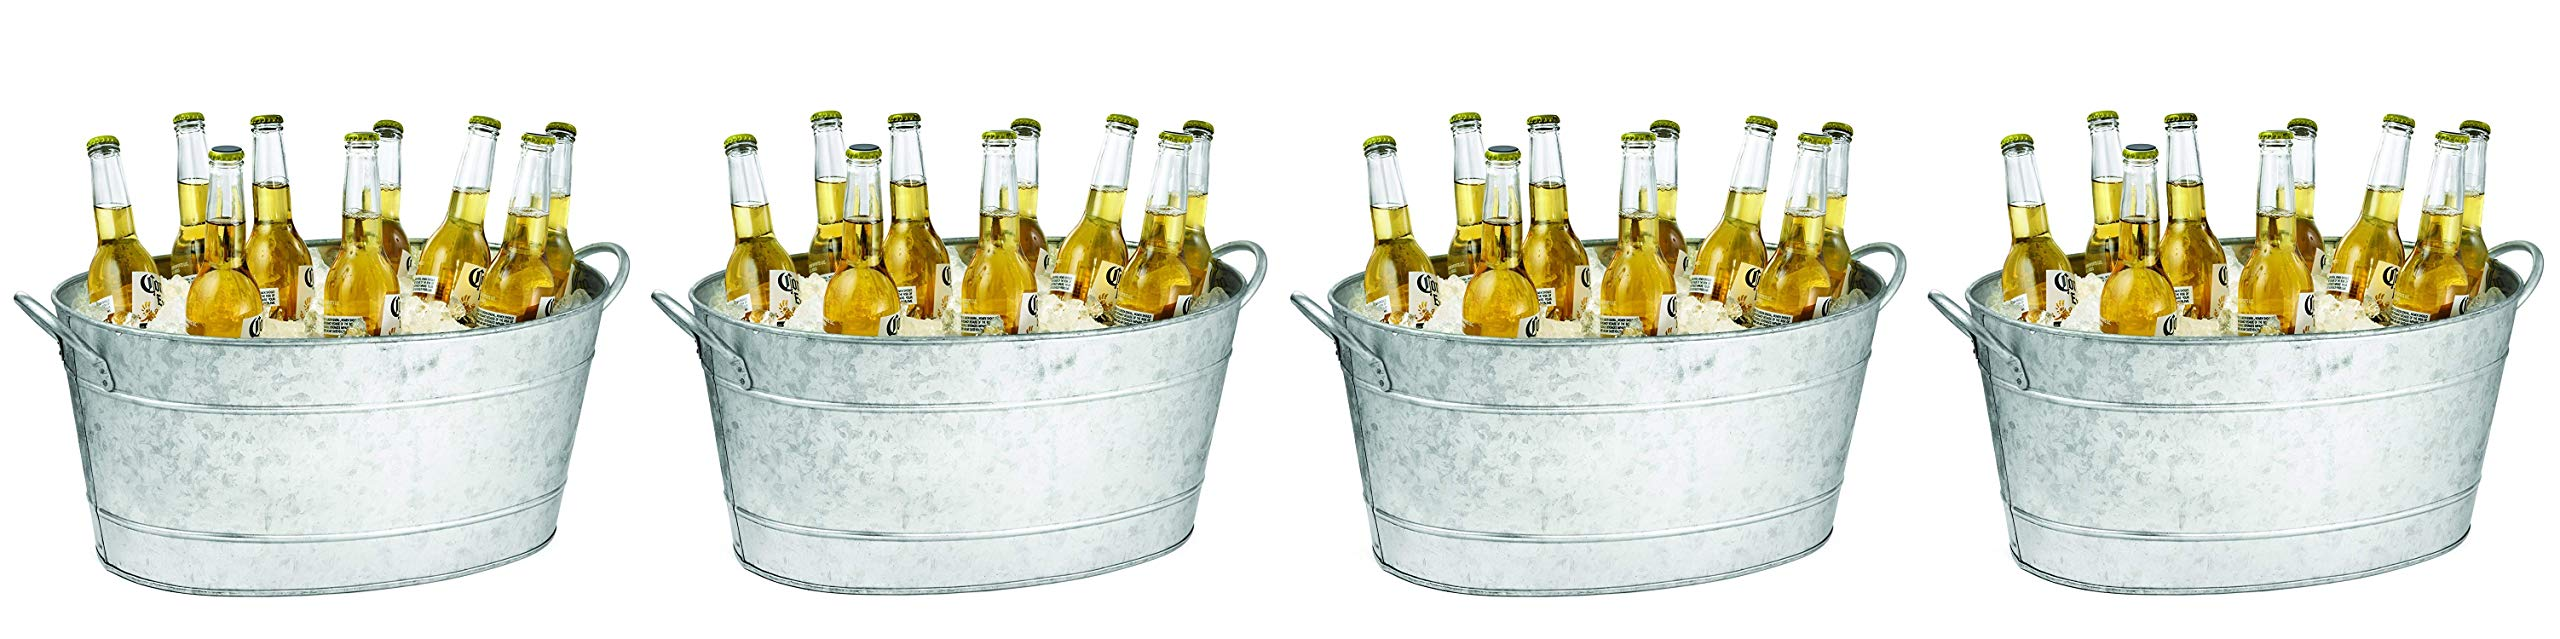 Tablecraft IR 4033 Wine Cooler, Bucket 23 x 14.5 x 9.5 Silver (Pack of 4)